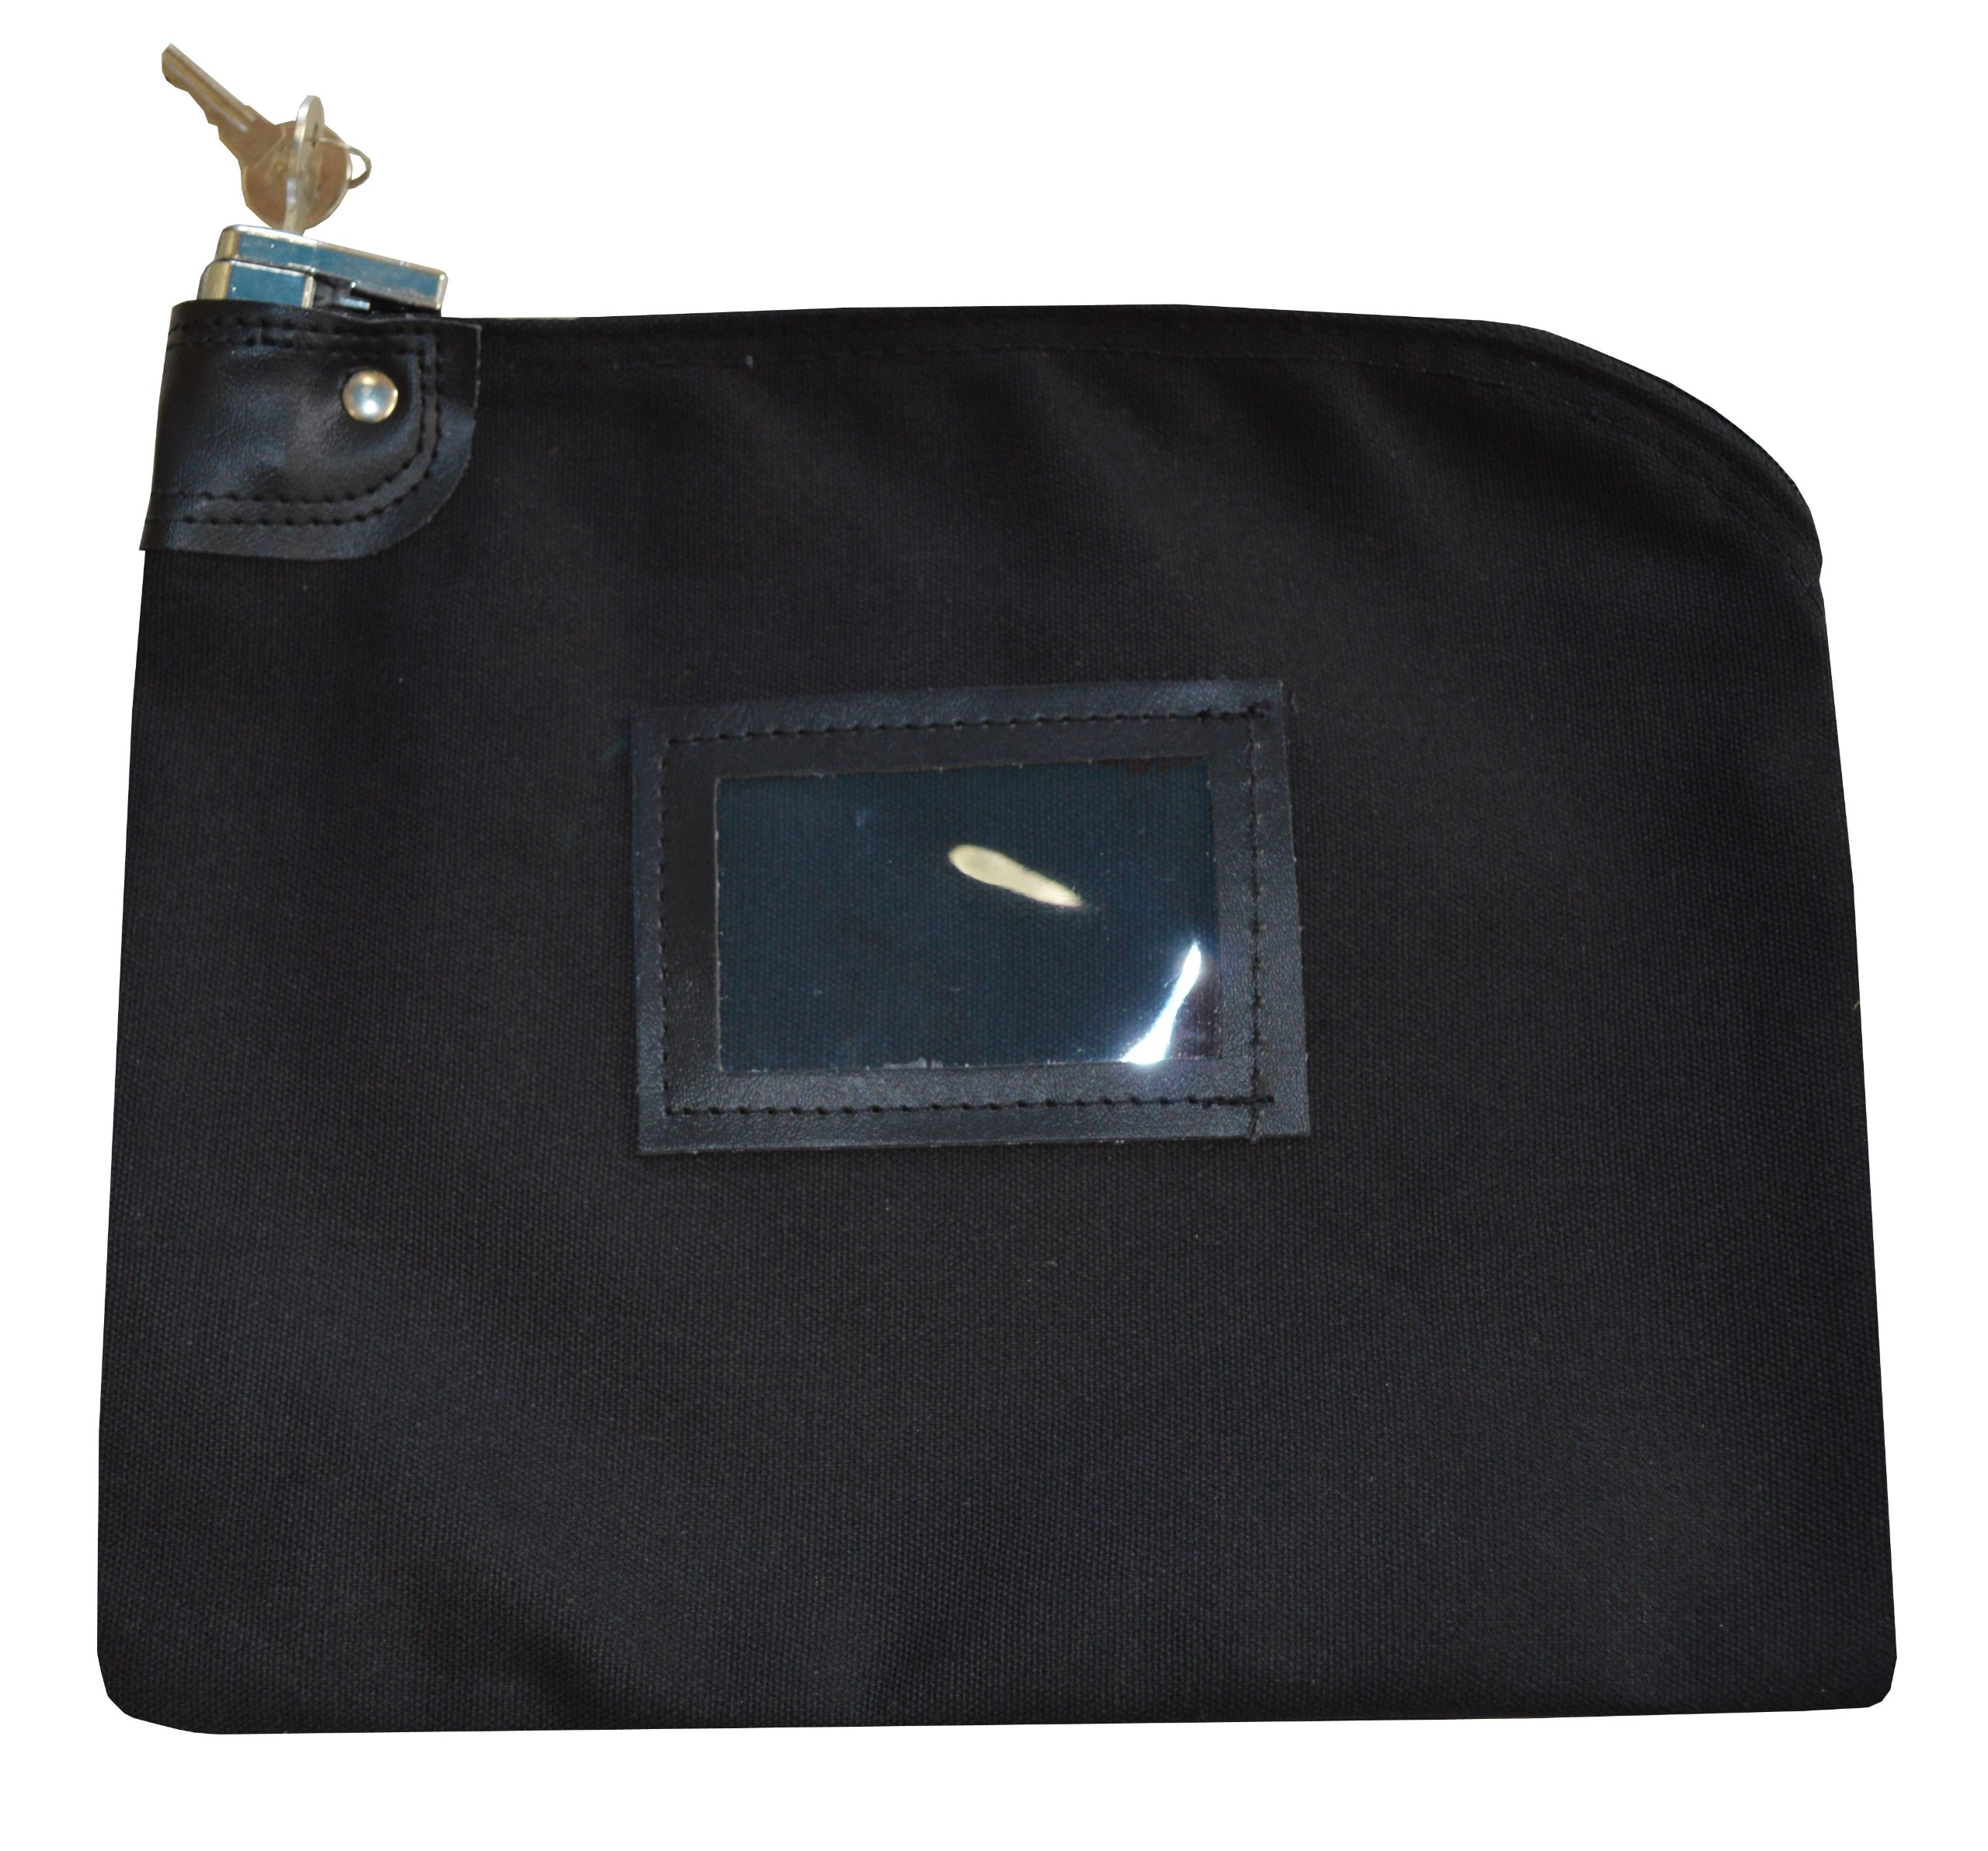 Locking Bank Bag Canvas Keyed Security (Black) by Cardinal Bag Supplies (Image #1)